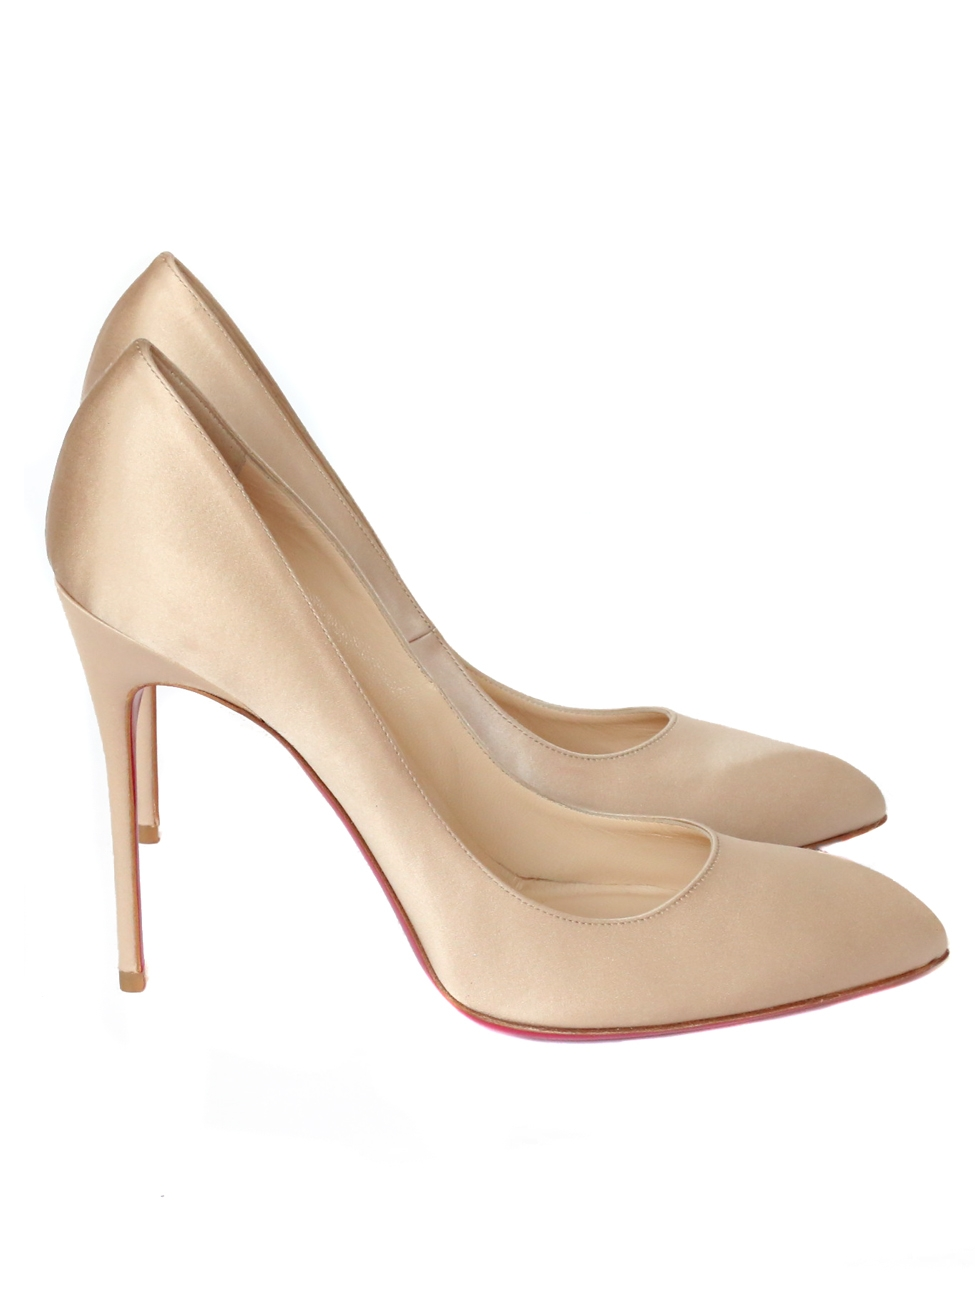 bas prix 048b4 5b373 Louise Paris - CHRISTIAN LOUBOUTIN Escarpins stiletto CHIARA ...